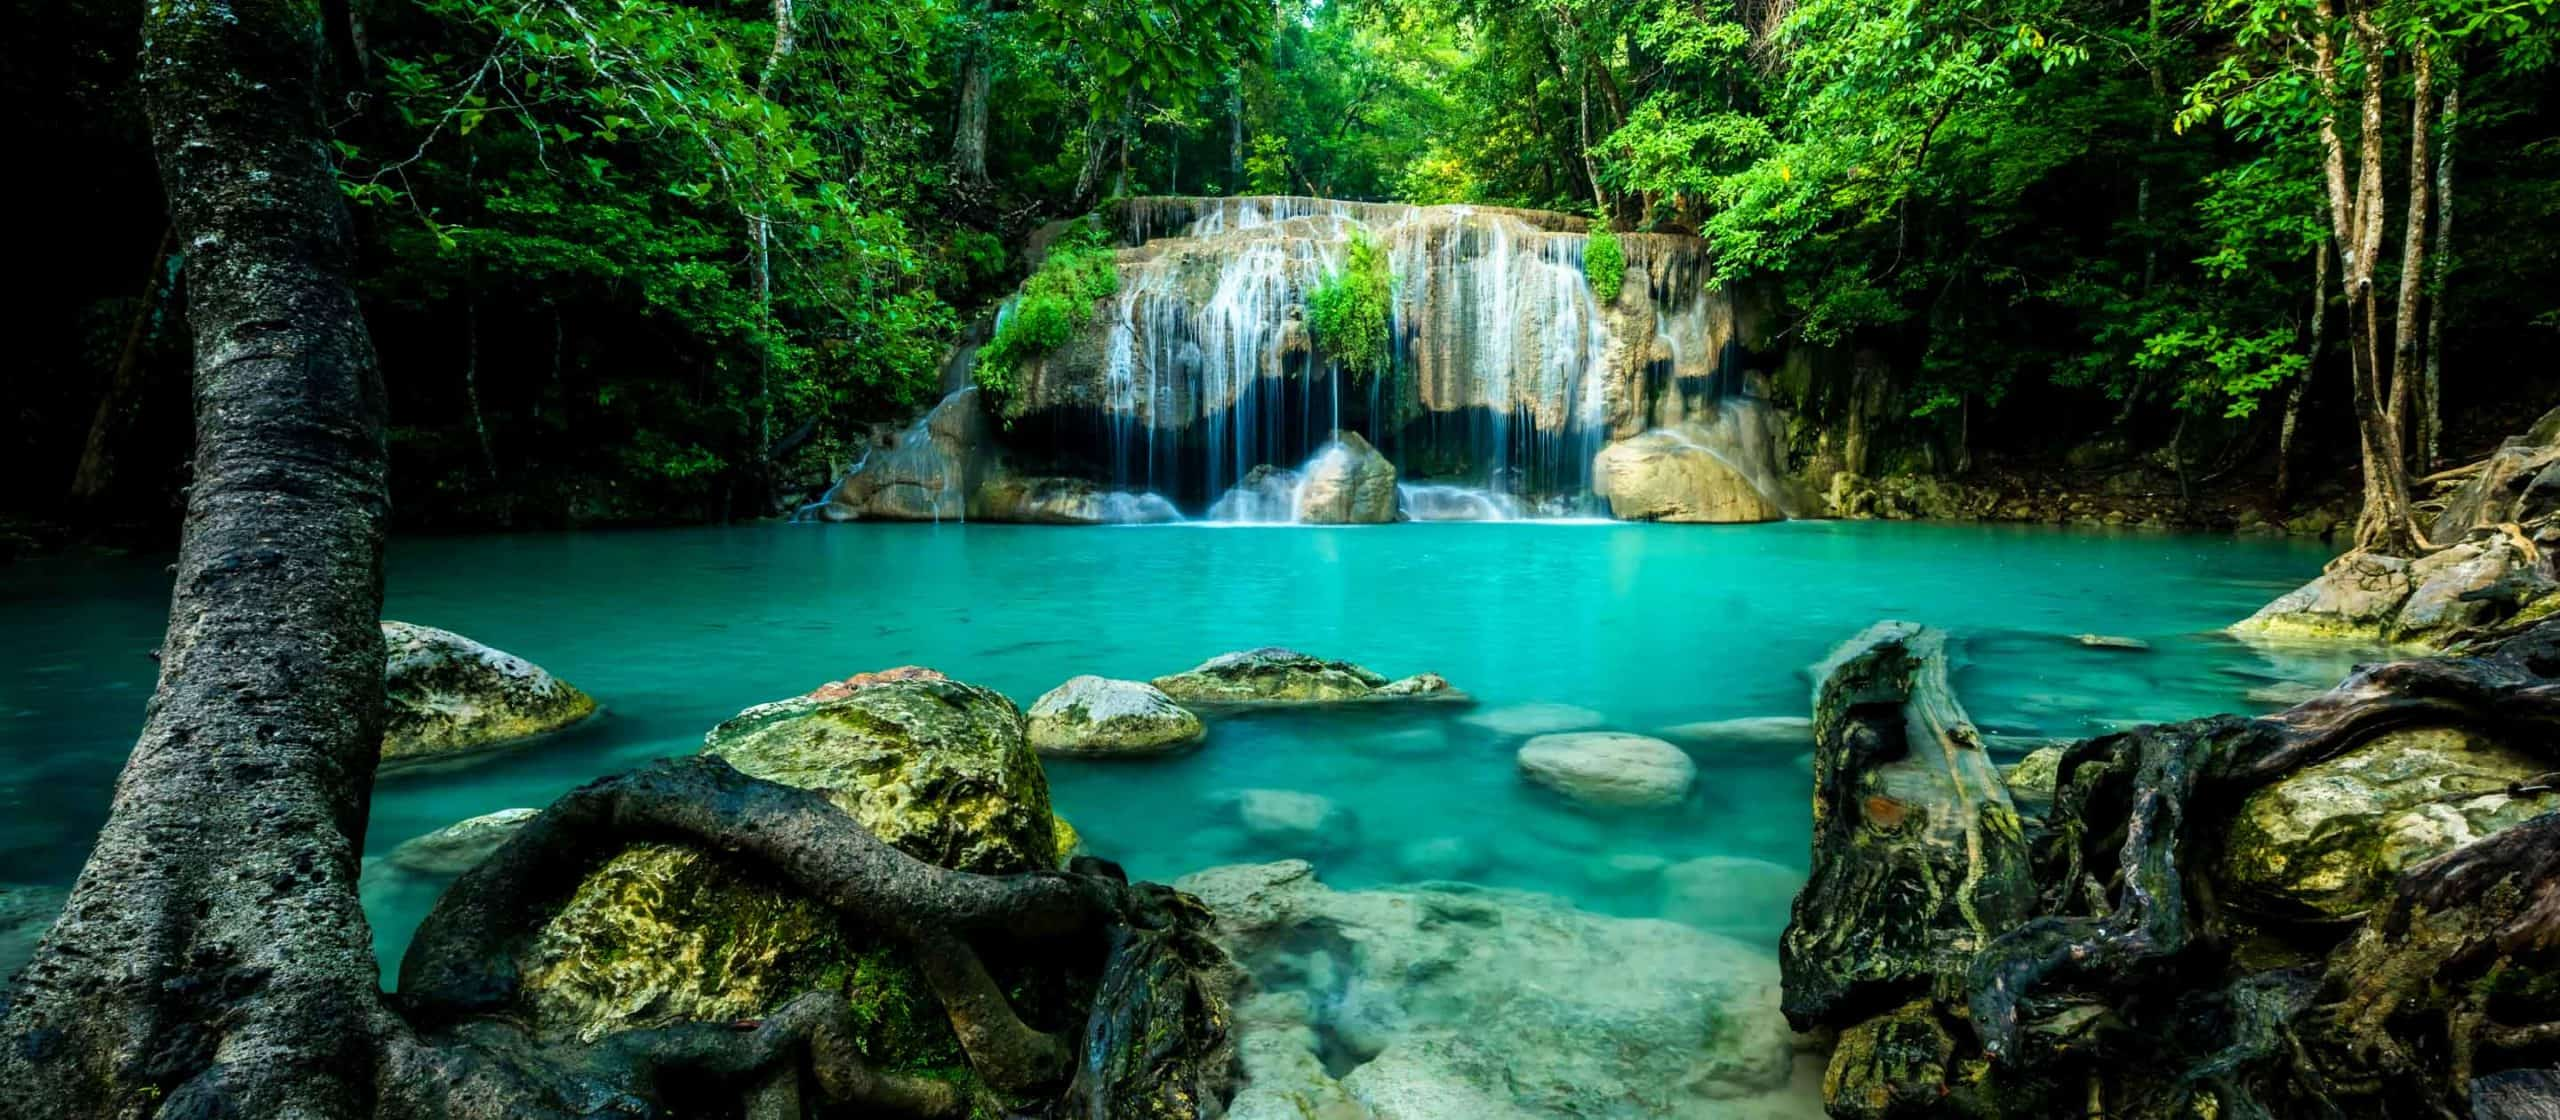 Do You Plan To Visit Erawan National Park? Buy These Products